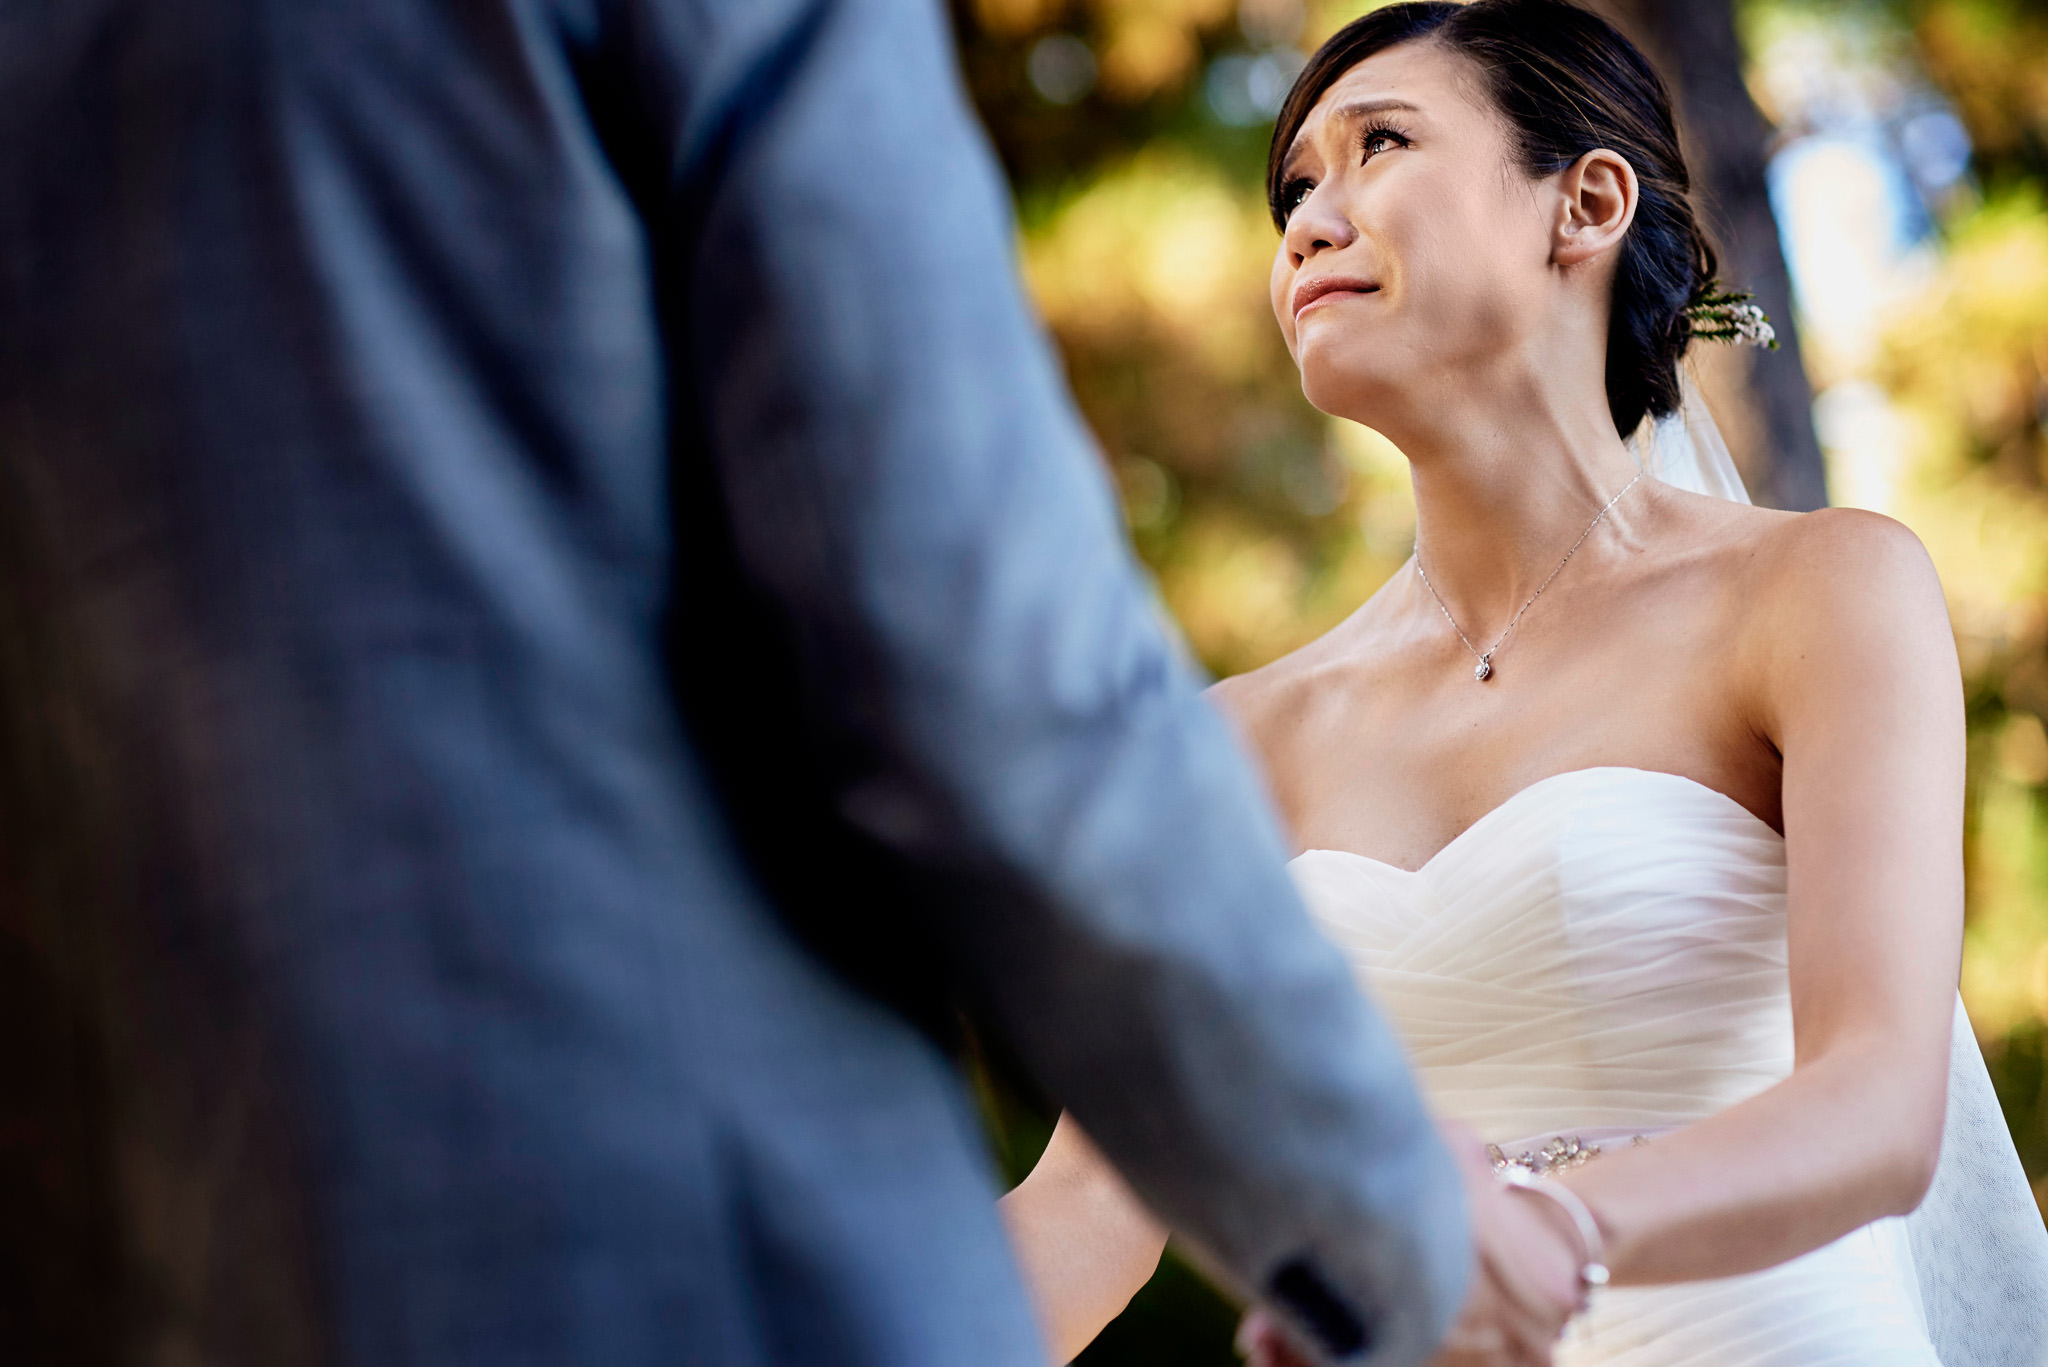 Melanie & Eugene's wedding at Forest House Lodge in Foresthill, CA